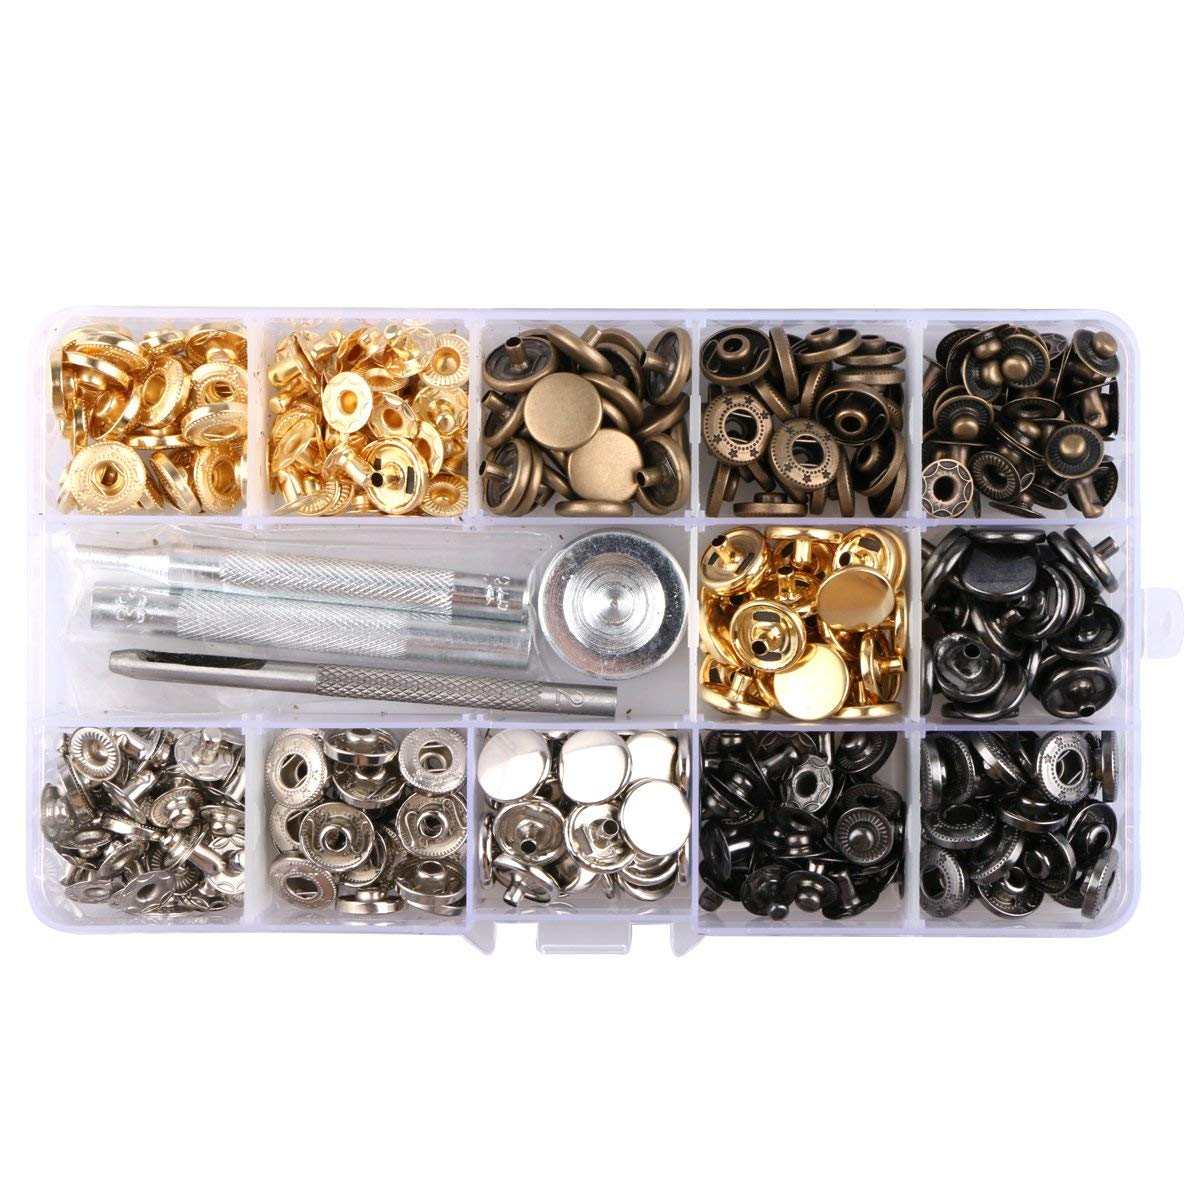 Mikimiqi 100 Sets Copper Snap Fastener Kit Button Tools Press Studs Fastener Snap Leather Rivets with Fixing Tool for Fabric, Leather Craft (12 mm) (100 Set Copper Snap)